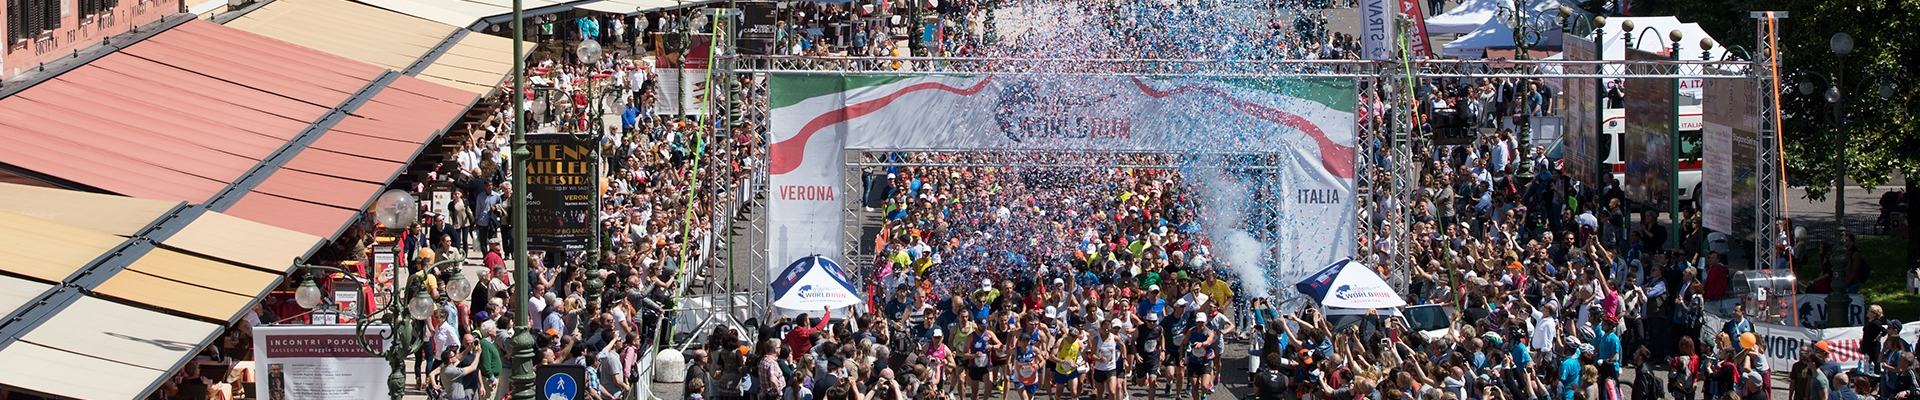 world-run-verona